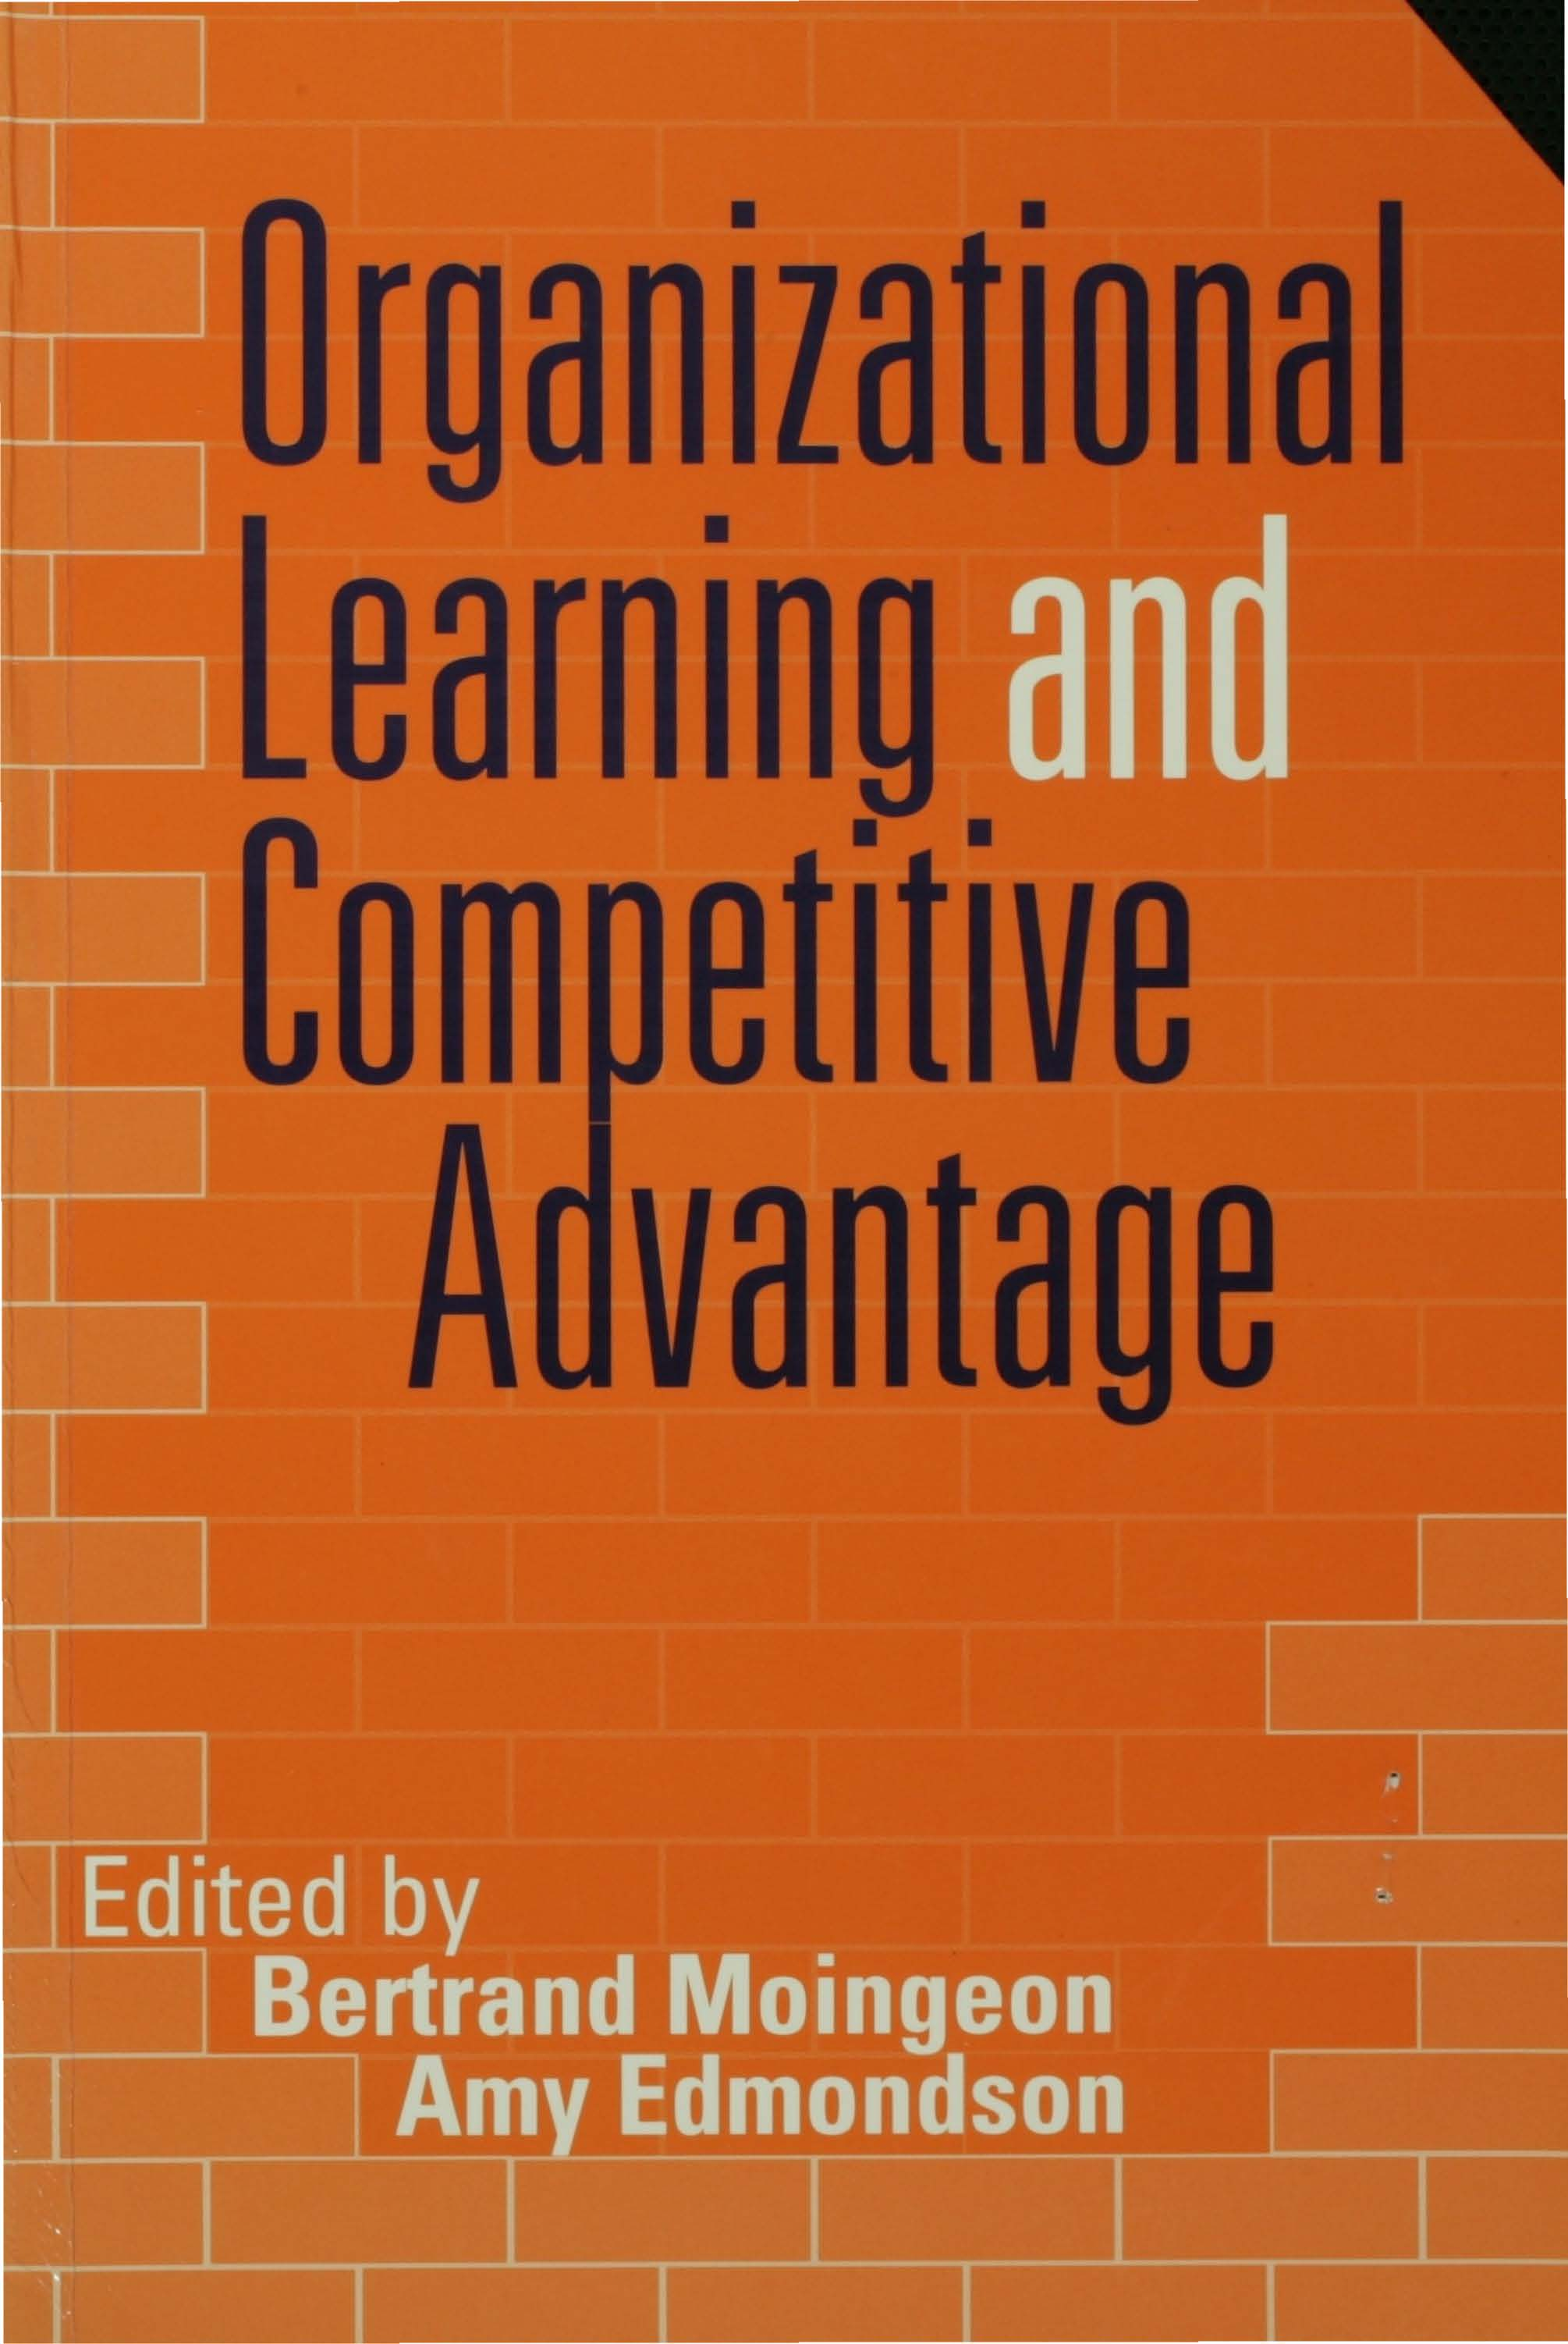 Download Ebook Organizational Learning and Competitive Advantage by Bertrand Moingeon Pdf